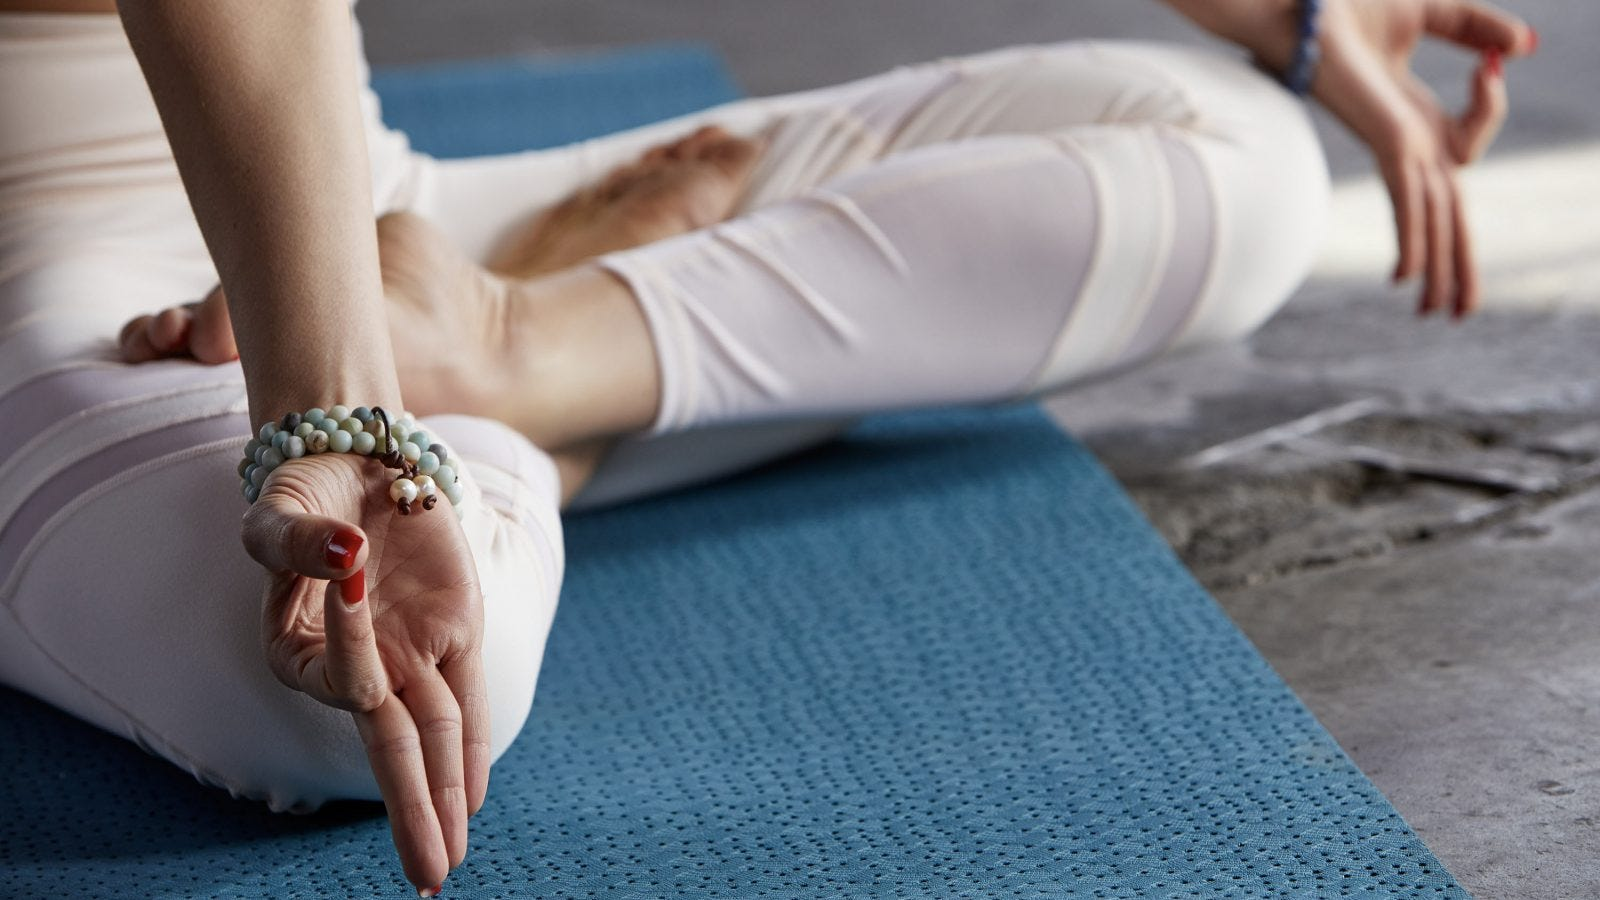 A woman's legs and hands in a yoga pose.